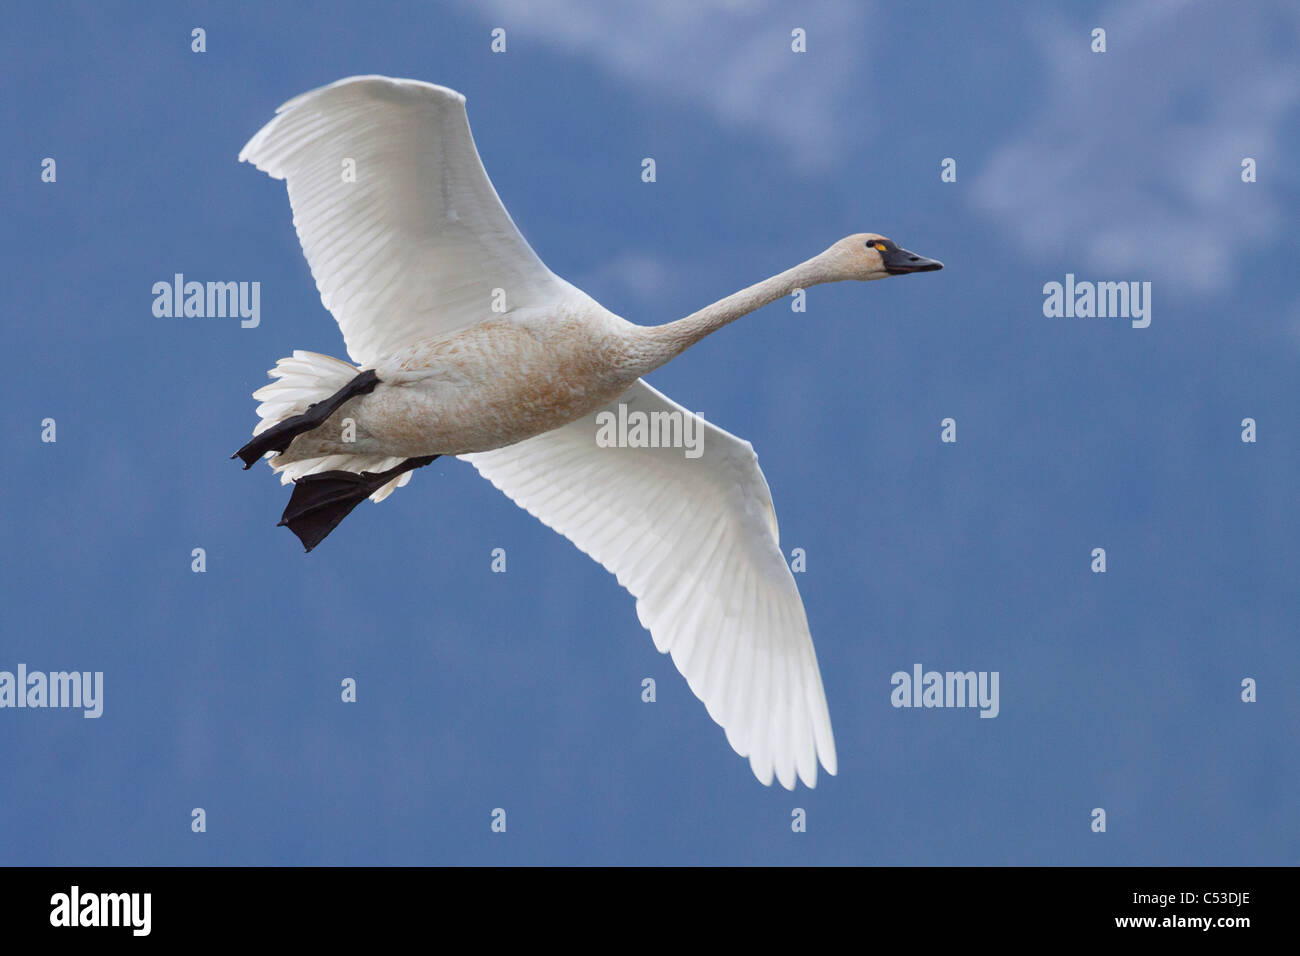 A Tundra Swan flys through the blue sky near Portage, Southcentral Alaska, Autumn - Stock Image